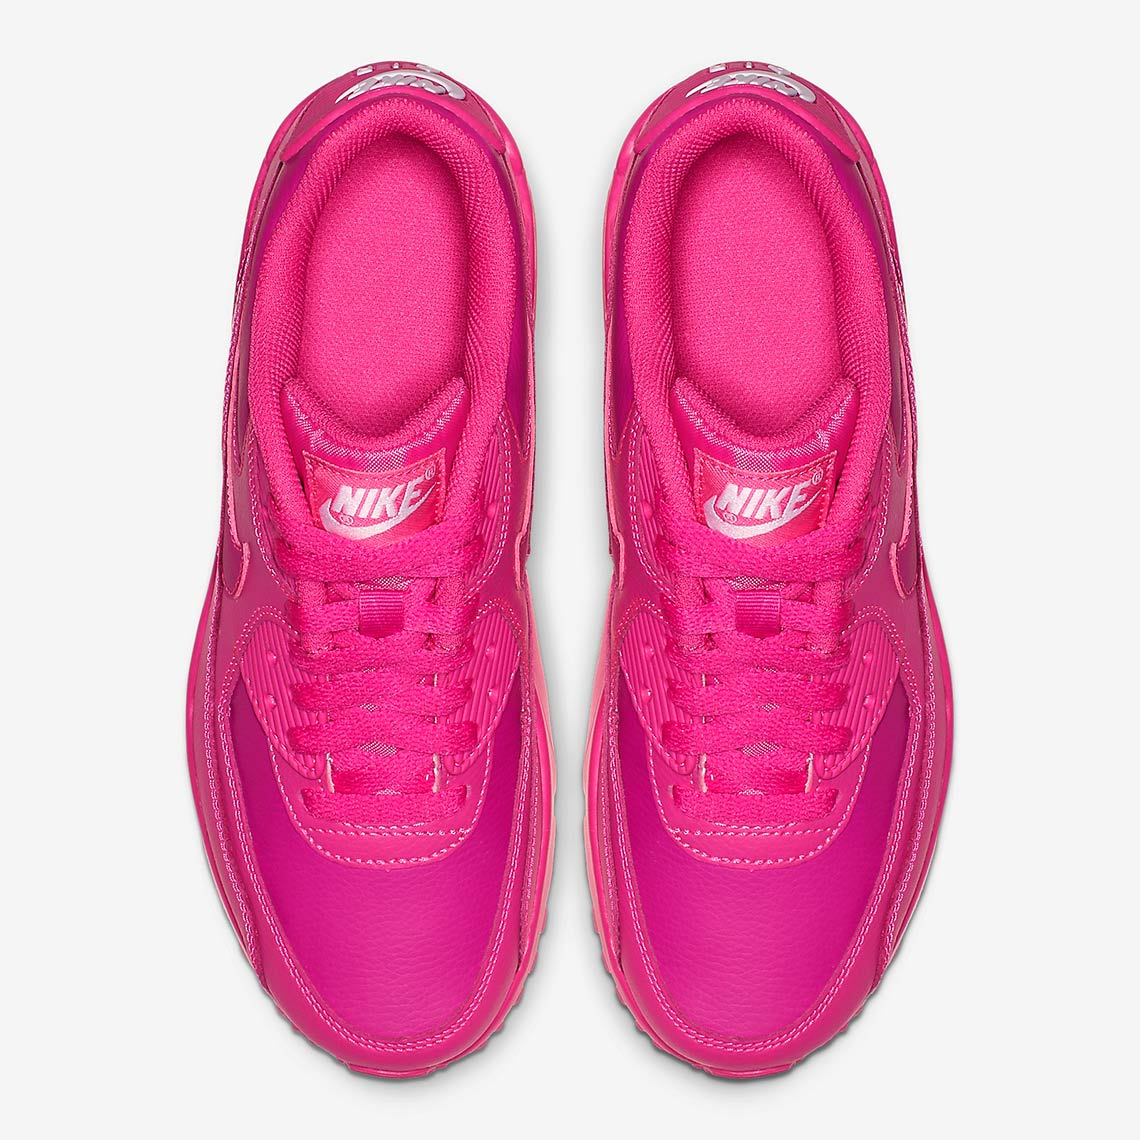 1e1e6f188236 Nike Air Max 90 GS 833376-603 Pink Buying Guide